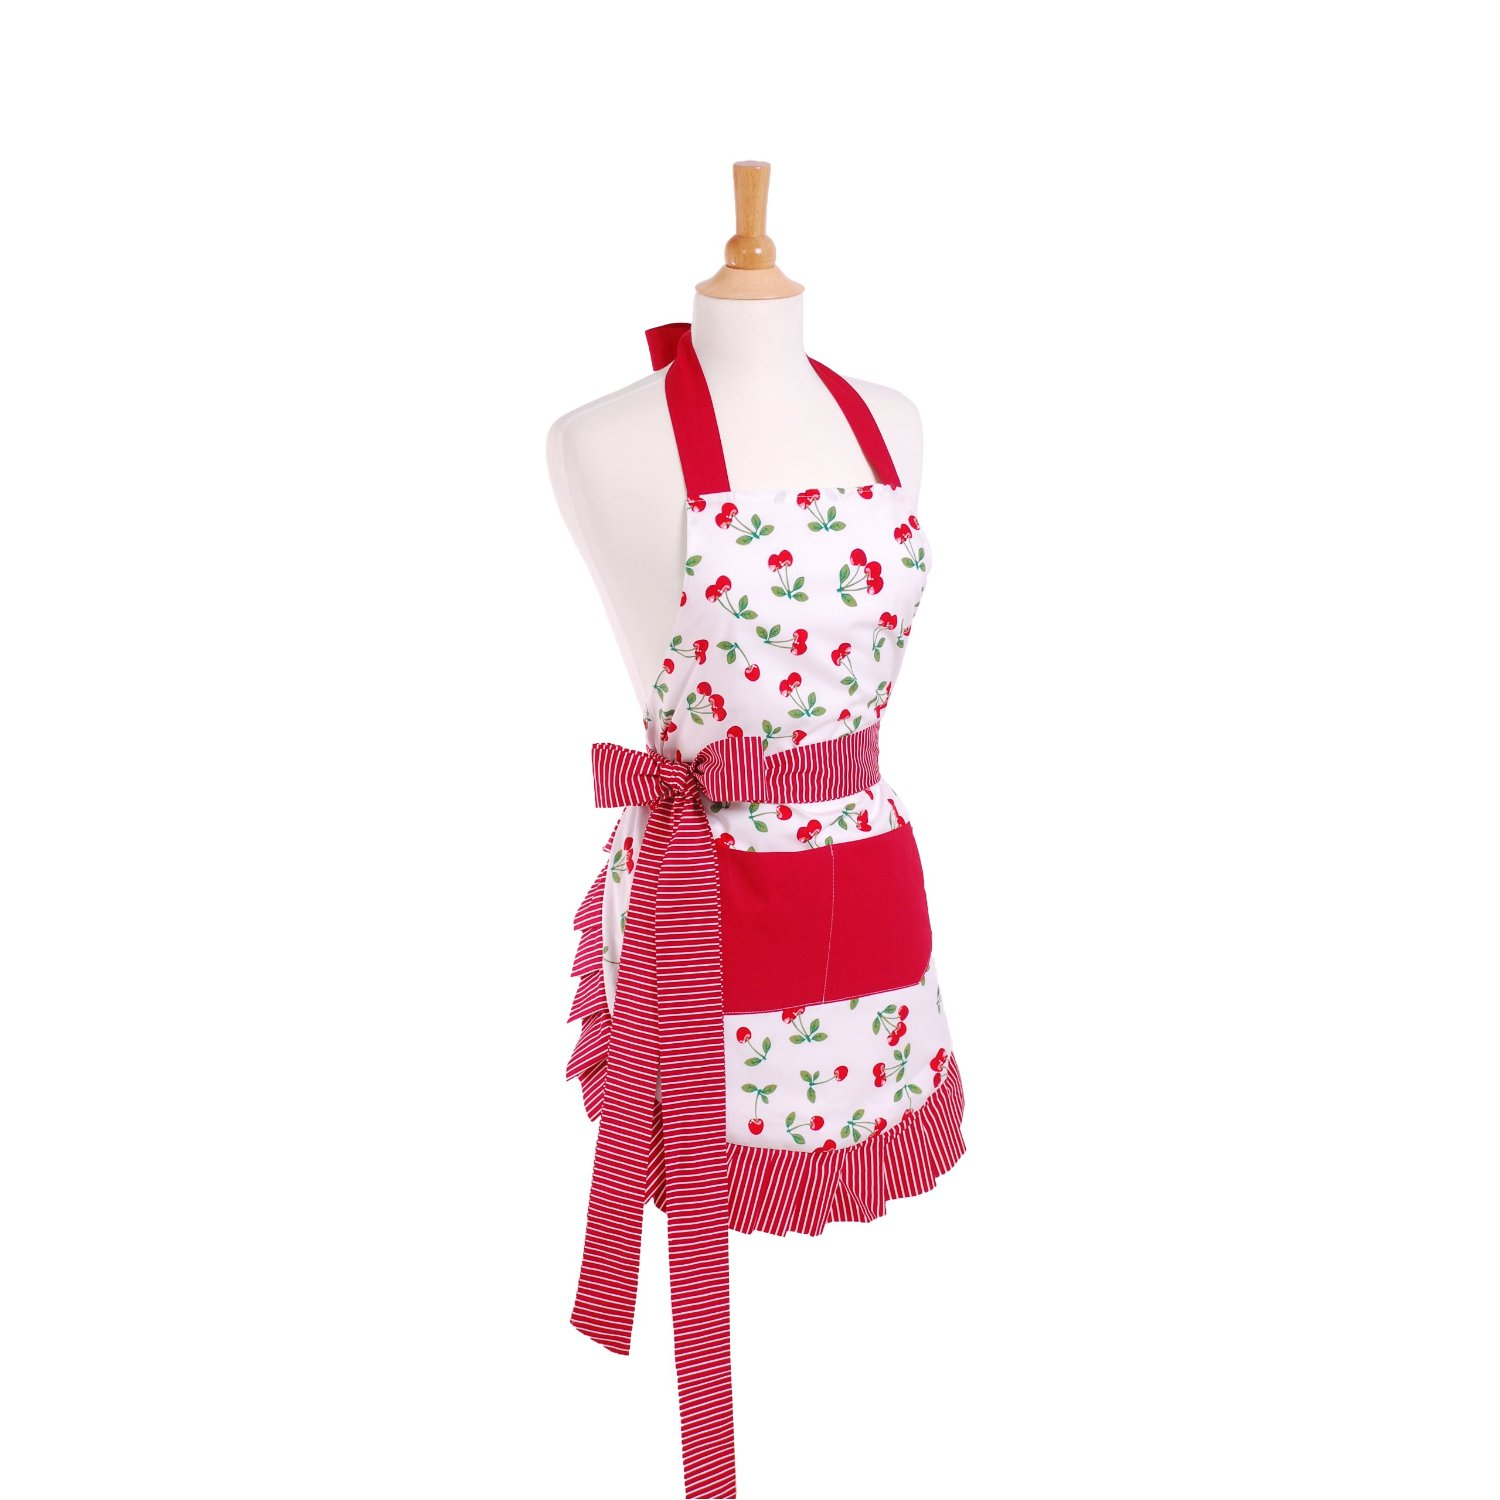 White & Red Vintage style cherry apron with red bow and cute ruffle